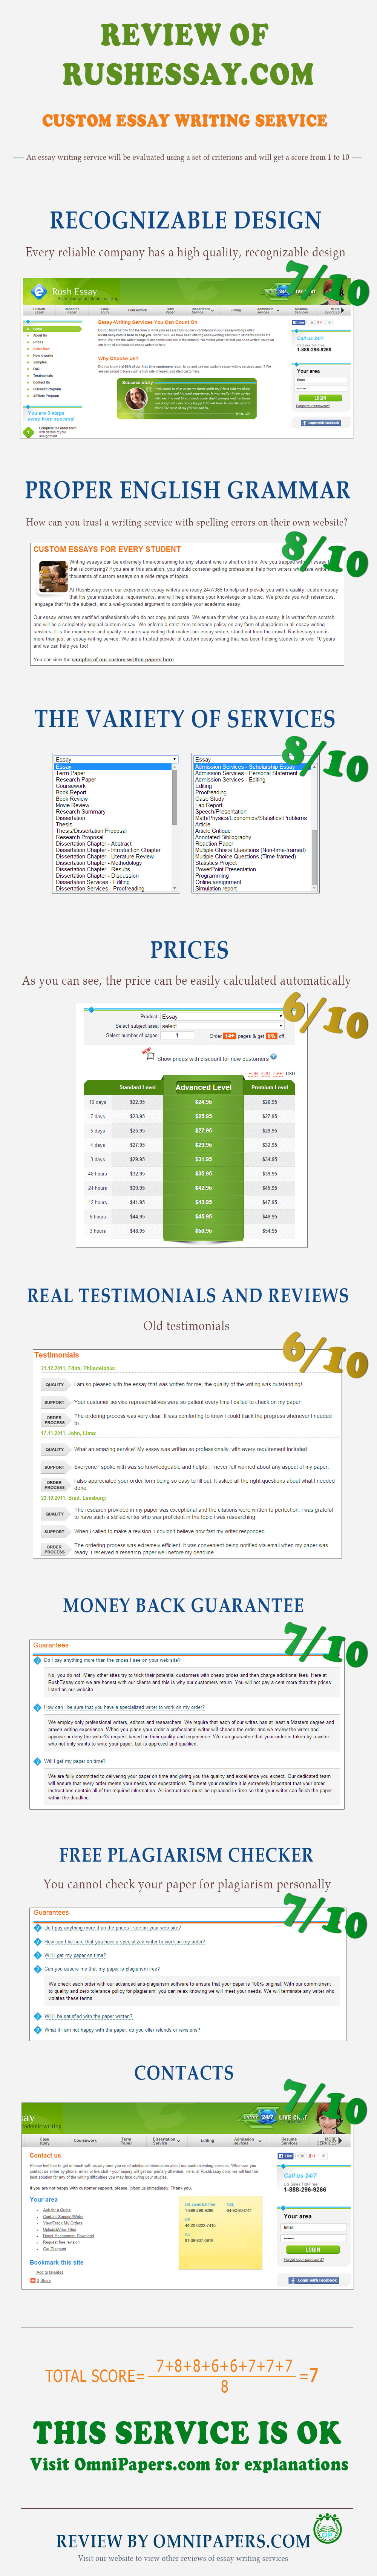 rushessay com review score 7 10 true sample available rushessay com review